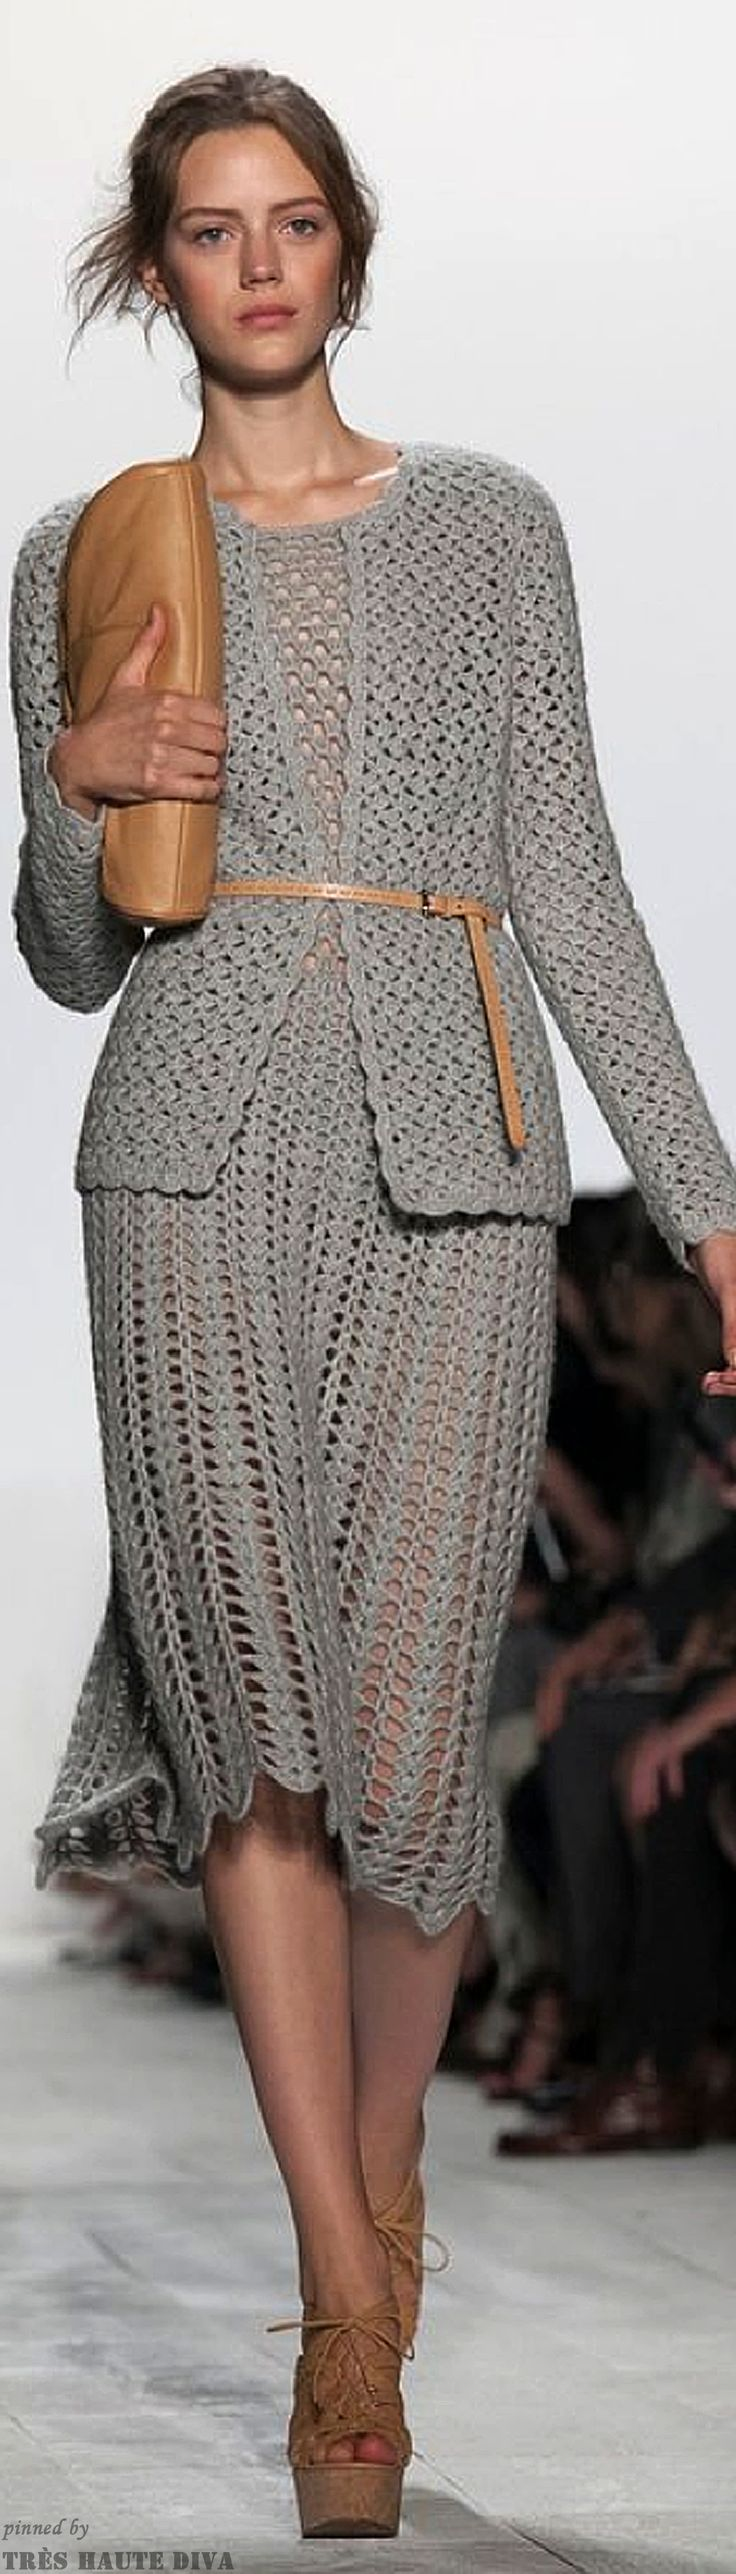 Michael Kors Spring 2014 RTW ( Working 9 to 5 )